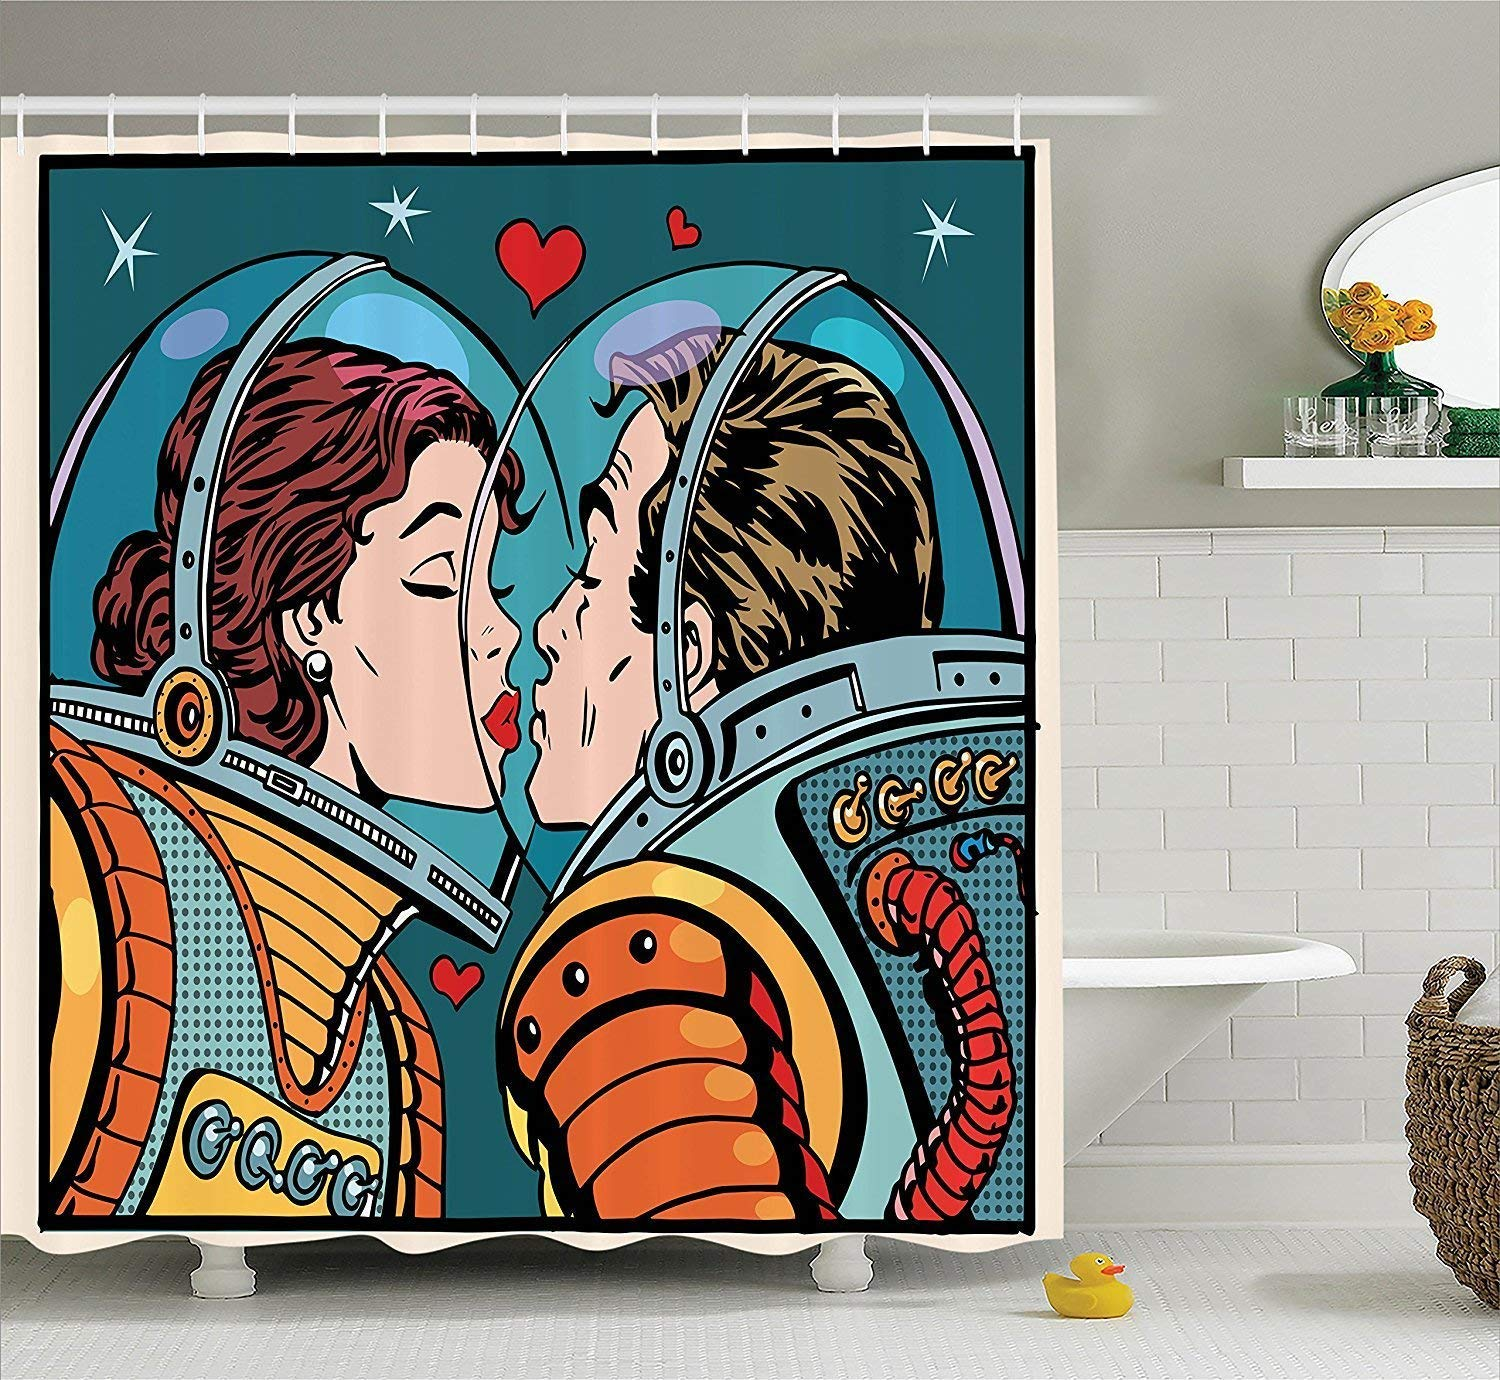 Diversión sexy werert Anime Shower Curtain Love Decor Cosmos 'Space Man and Woman Astronauts Kissing Science Cosmos Decor Fantasy Couple Pop Art Style Artful Print, Polyester Fabric Bathroom Set with Hooks, Multi 72 X 72 1fed06